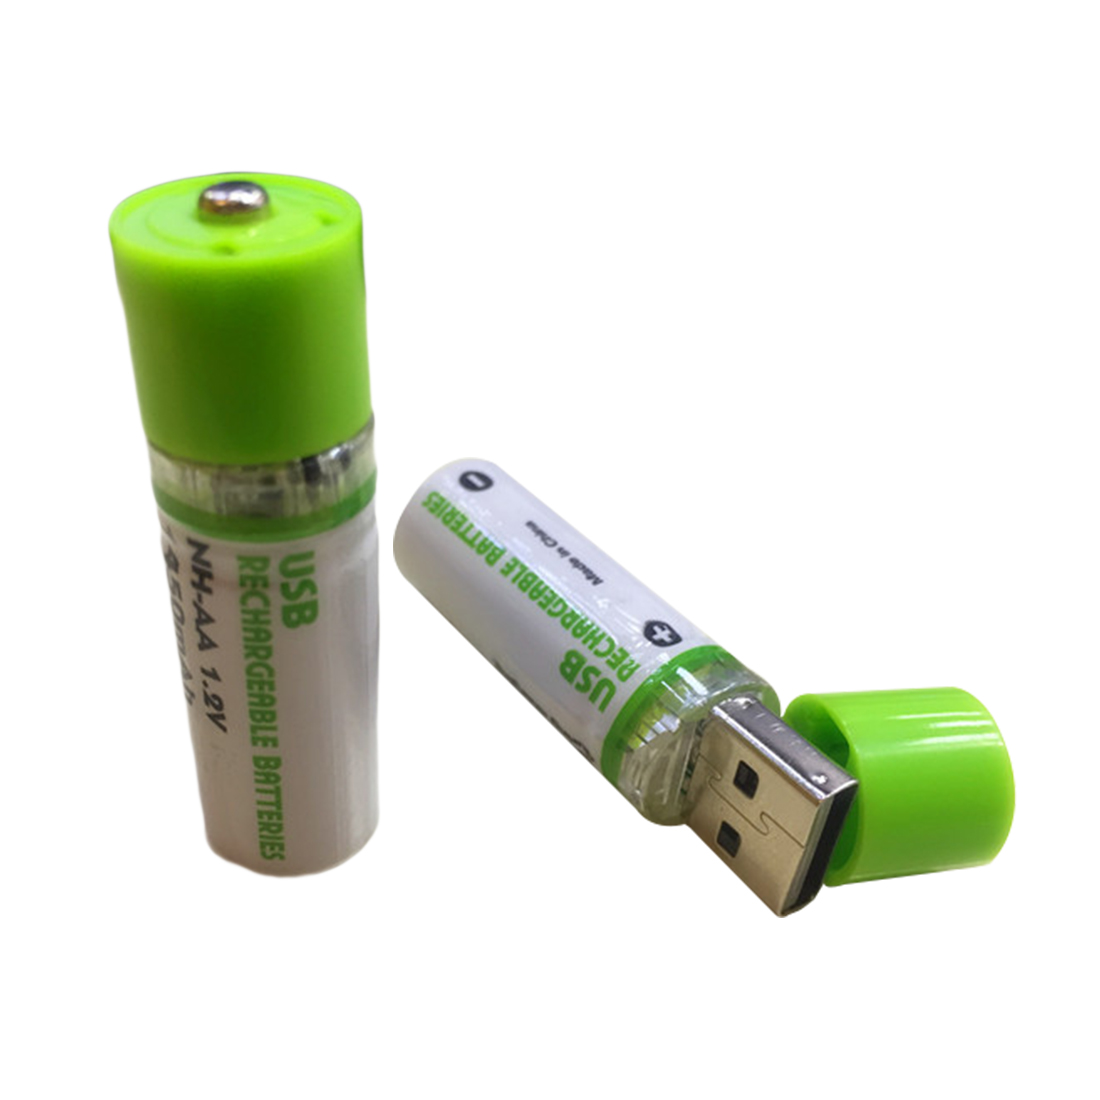 Centechia Good Sale 2Pcs AA Battery Nimh AA 1.2V 1450MAH Rechargeable Battery NI-MH USB AA 1450MAH